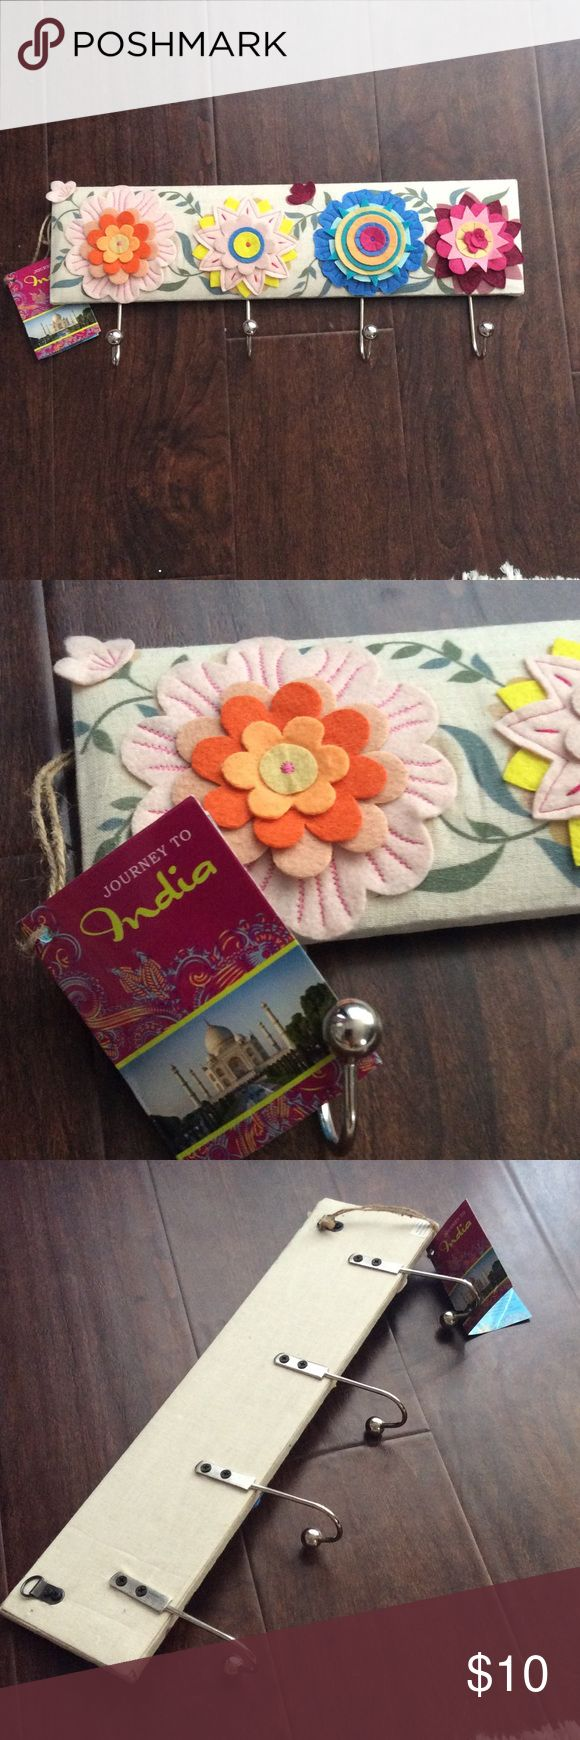 """Decorative Wall Holder for Jewelry or Accessories New! Got this from TJ Max, super cute wall decor to hang your jewelry or other dainty stuff. It is 18x 4.5"""" has 4 hooks and two back hoops for nails. Colorful flowers made of felt. Other"""